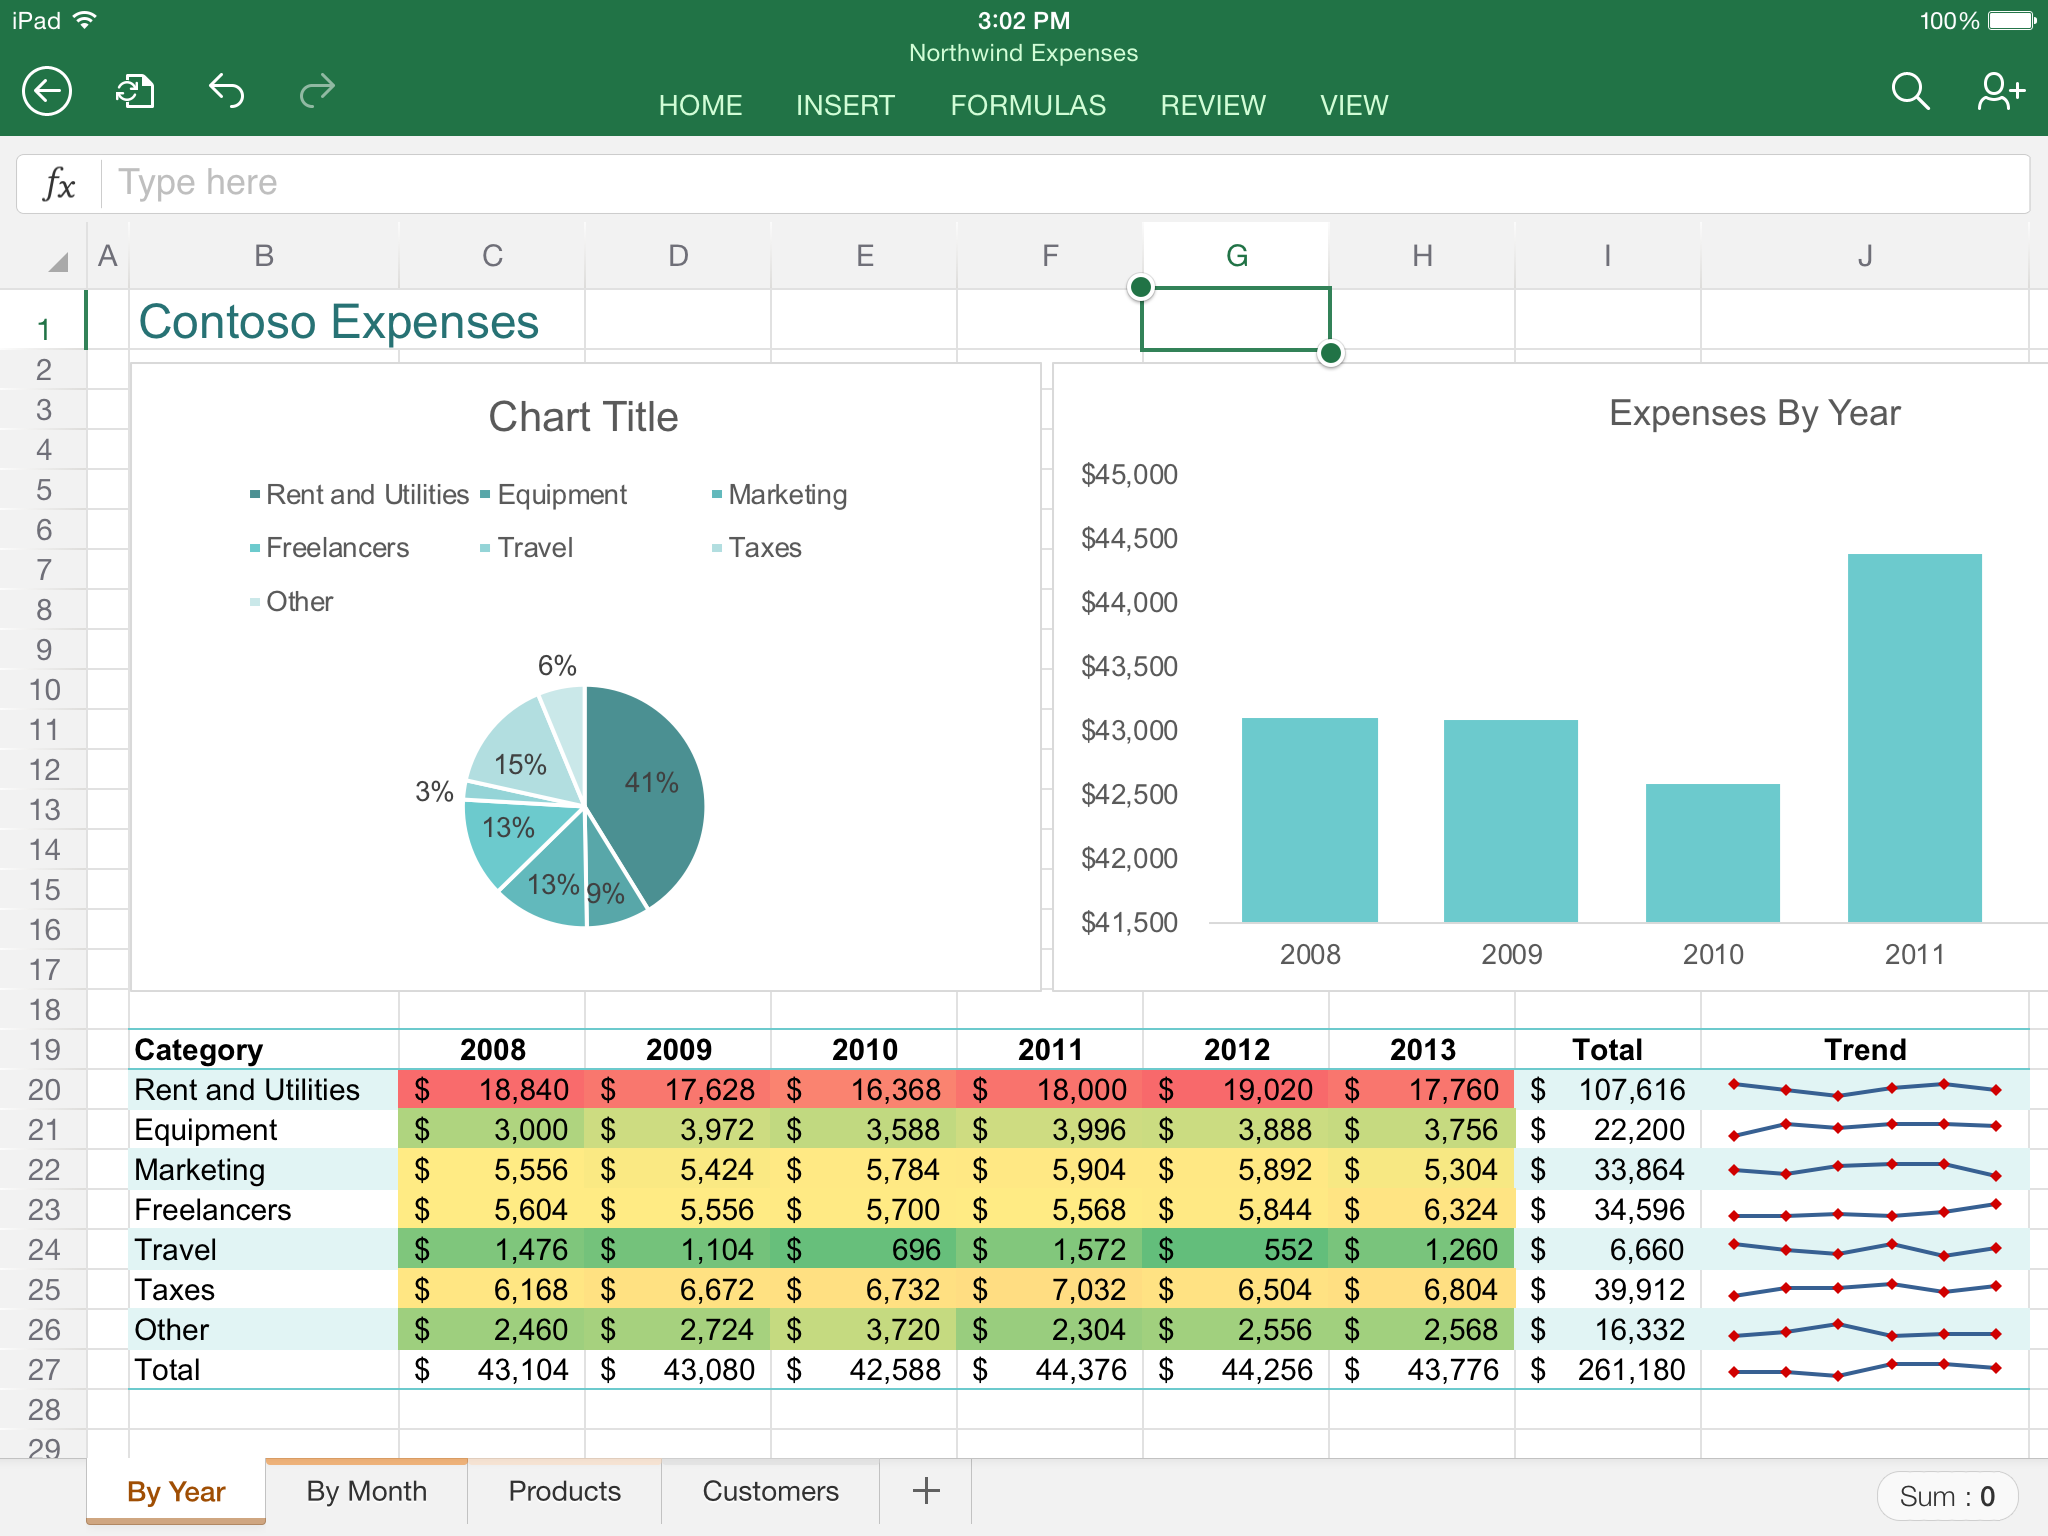 Ediblewildsus  Pleasant App Highlight Excel  Mobile Digital Now With Fetching Excel In Action With Enchanting Excel Spreadsheet For Warehouse Inventory Also How To Combine Charts In Excel In Addition T Test Calculator Excel And Update Excel Pivot Table As Well As Percentage Error In Excel Additionally Cool Excel Macro Tricks From Youstonybrookedu With Ediblewildsus  Fetching App Highlight Excel  Mobile Digital Now With Enchanting Excel In Action And Pleasant Excel Spreadsheet For Warehouse Inventory Also How To Combine Charts In Excel In Addition T Test Calculator Excel From Youstonybrookedu